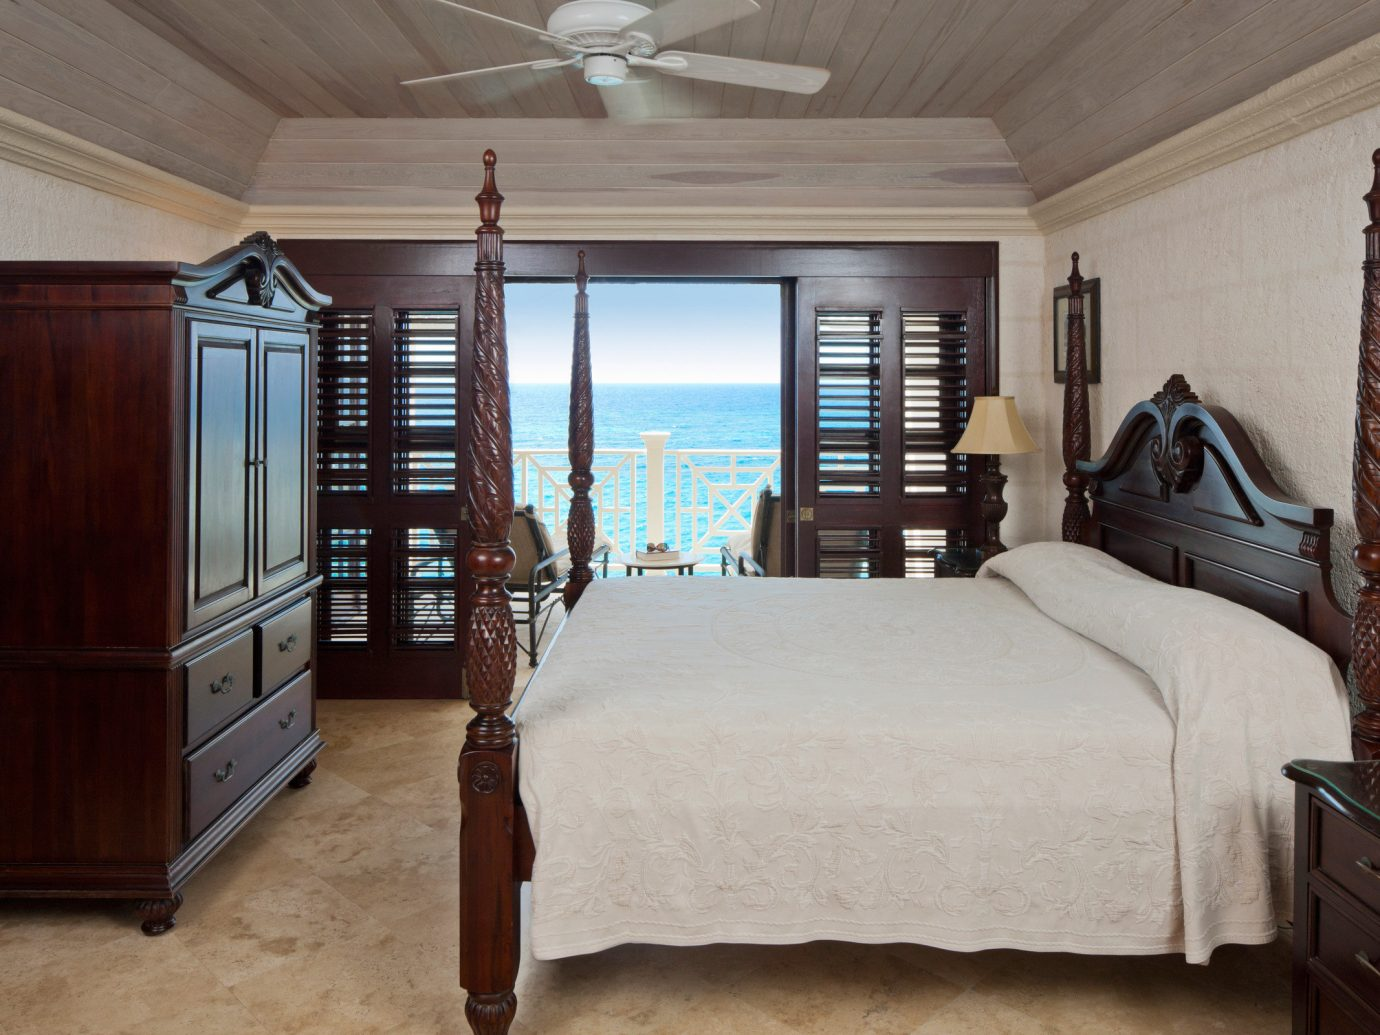 All-Inclusive Resorts Beachfront Bedroom Classic Hotels Living Resort Scenic views Suite indoor bed wall ceiling floor room property home house furniture estate hardwood cottage interior design hotel real estate wood living room farmhouse